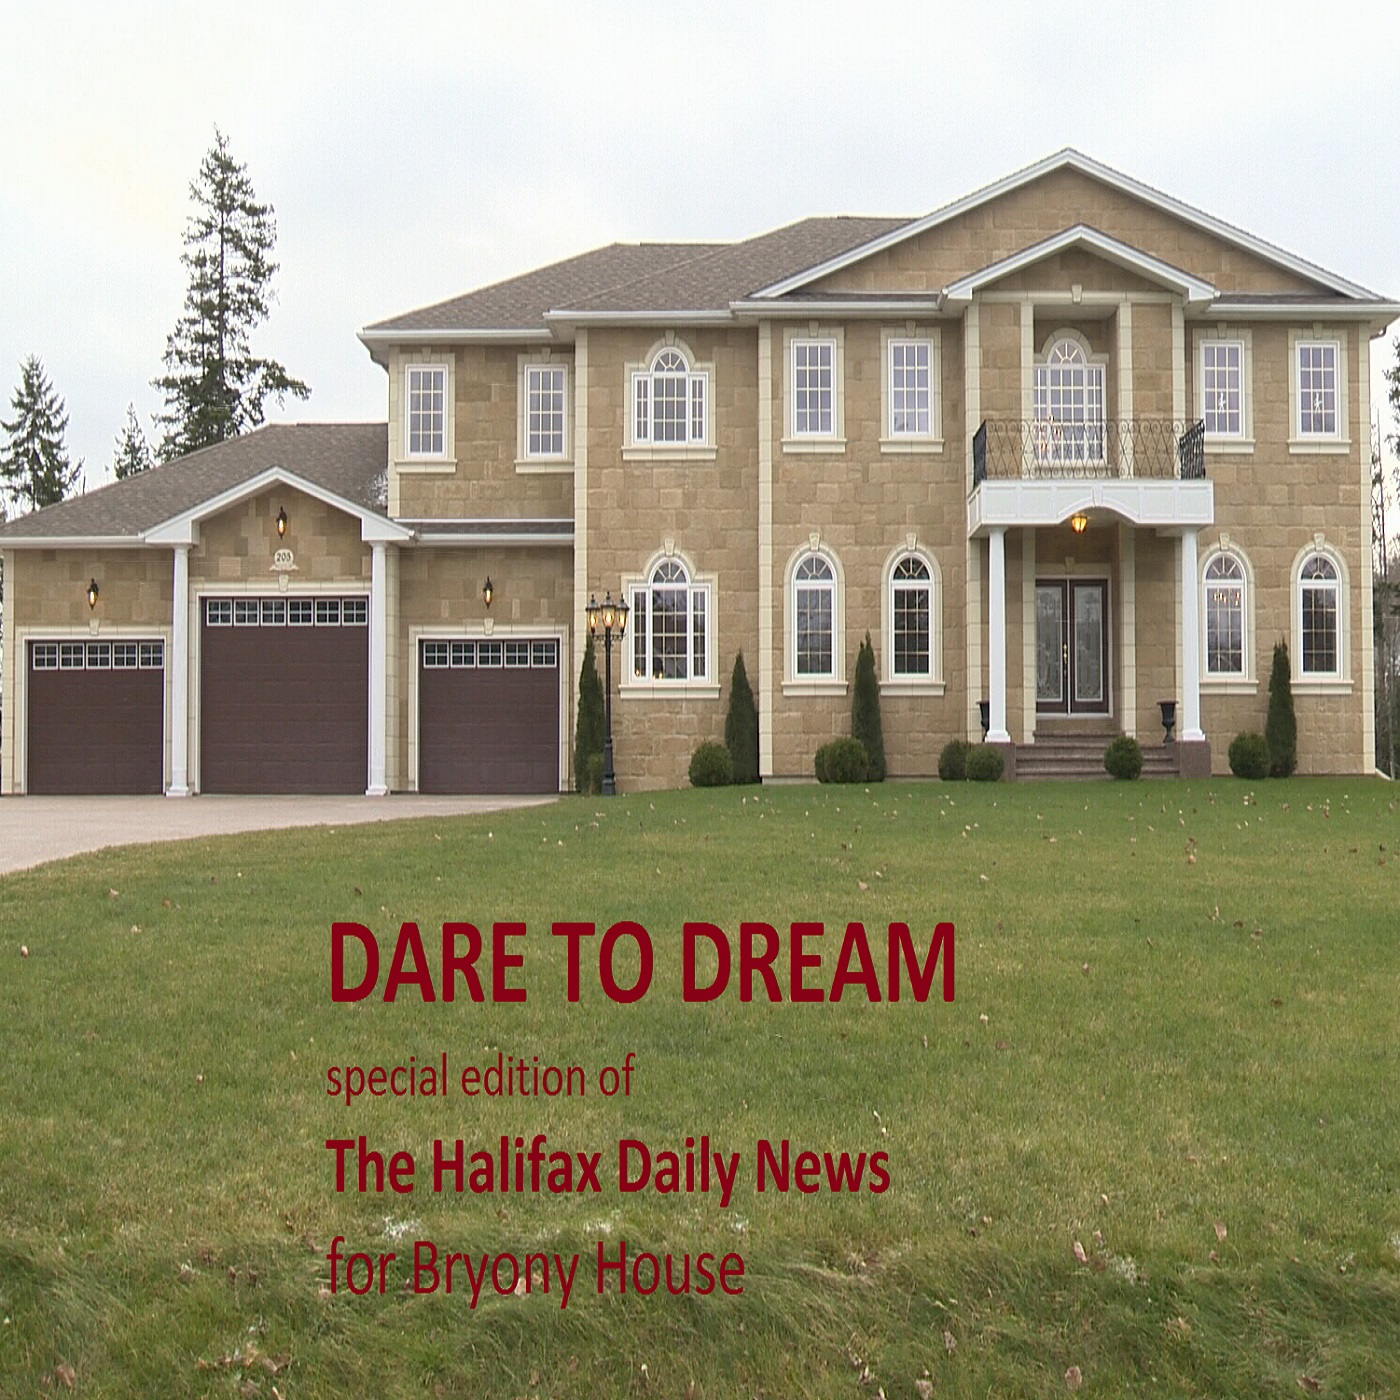 Dare To Dream Home Lottery: Daily News Podcast with Jamie